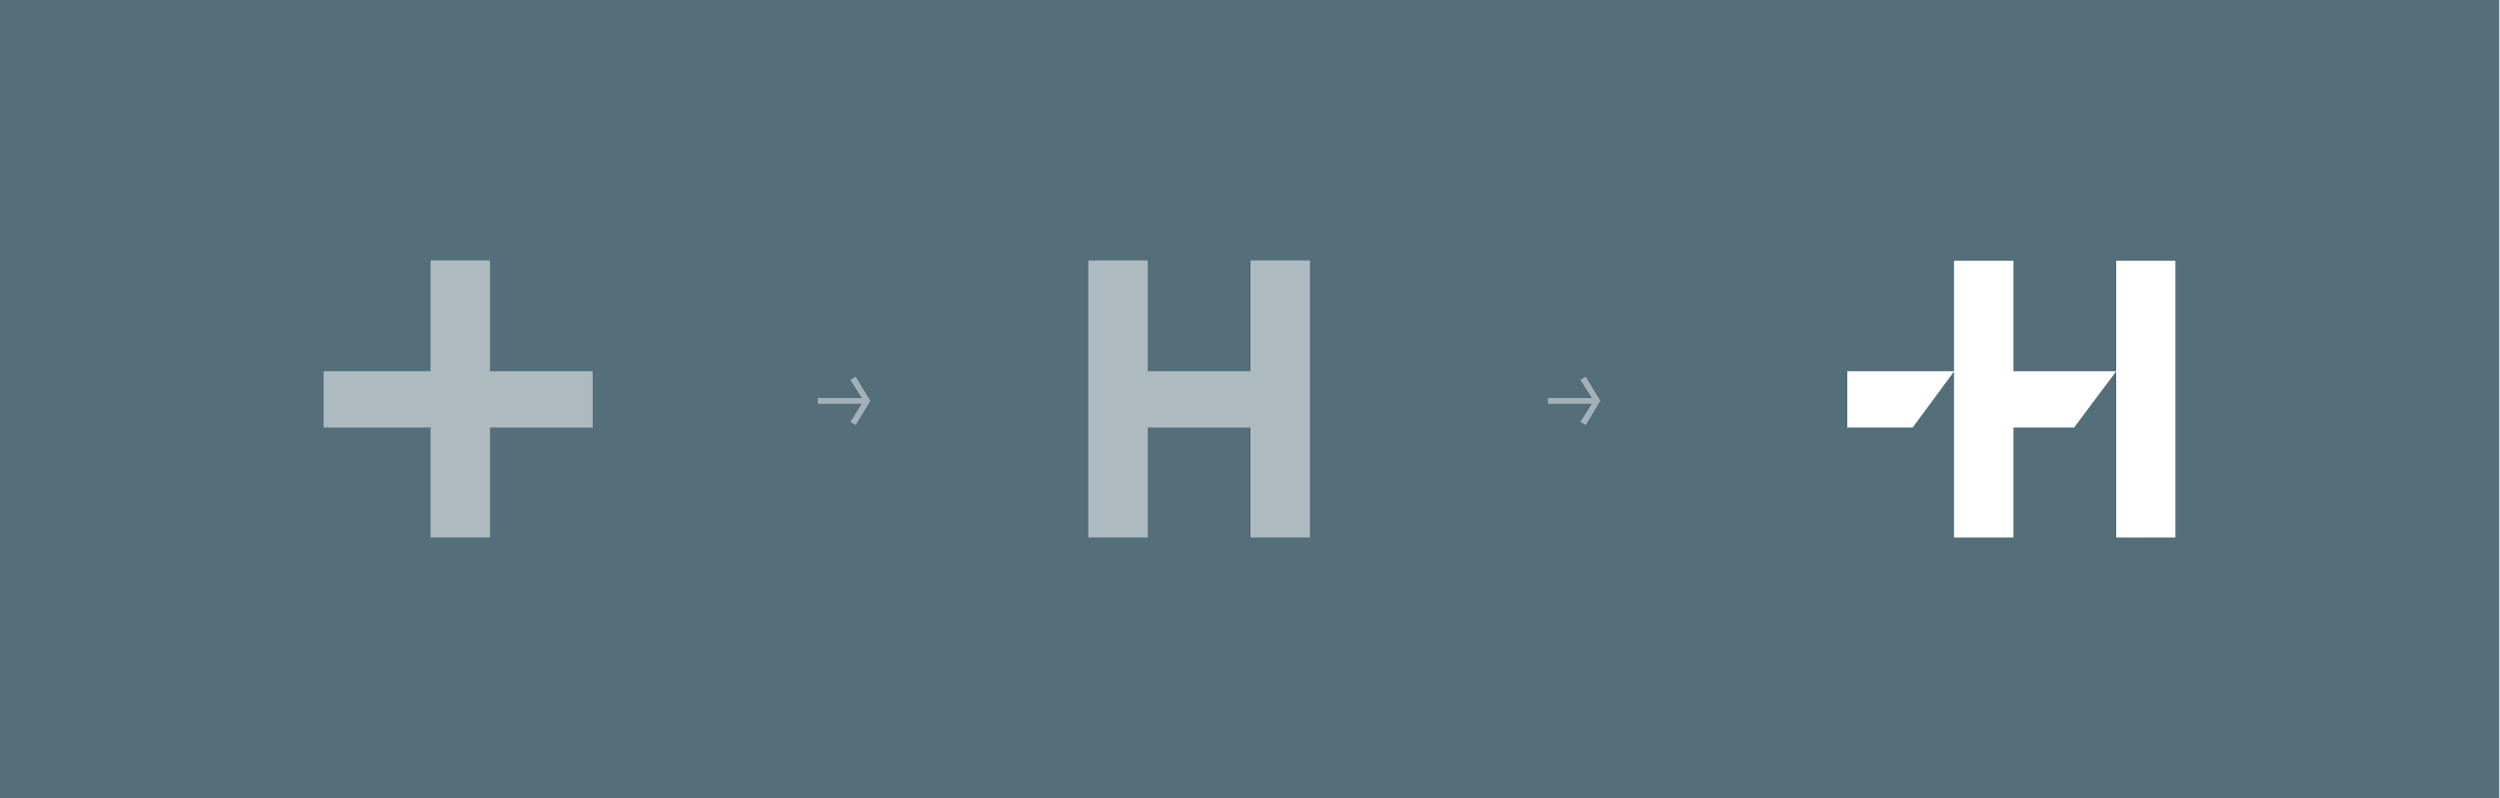 Hensley-Partners-Identity-by-Ian-Whalley.png